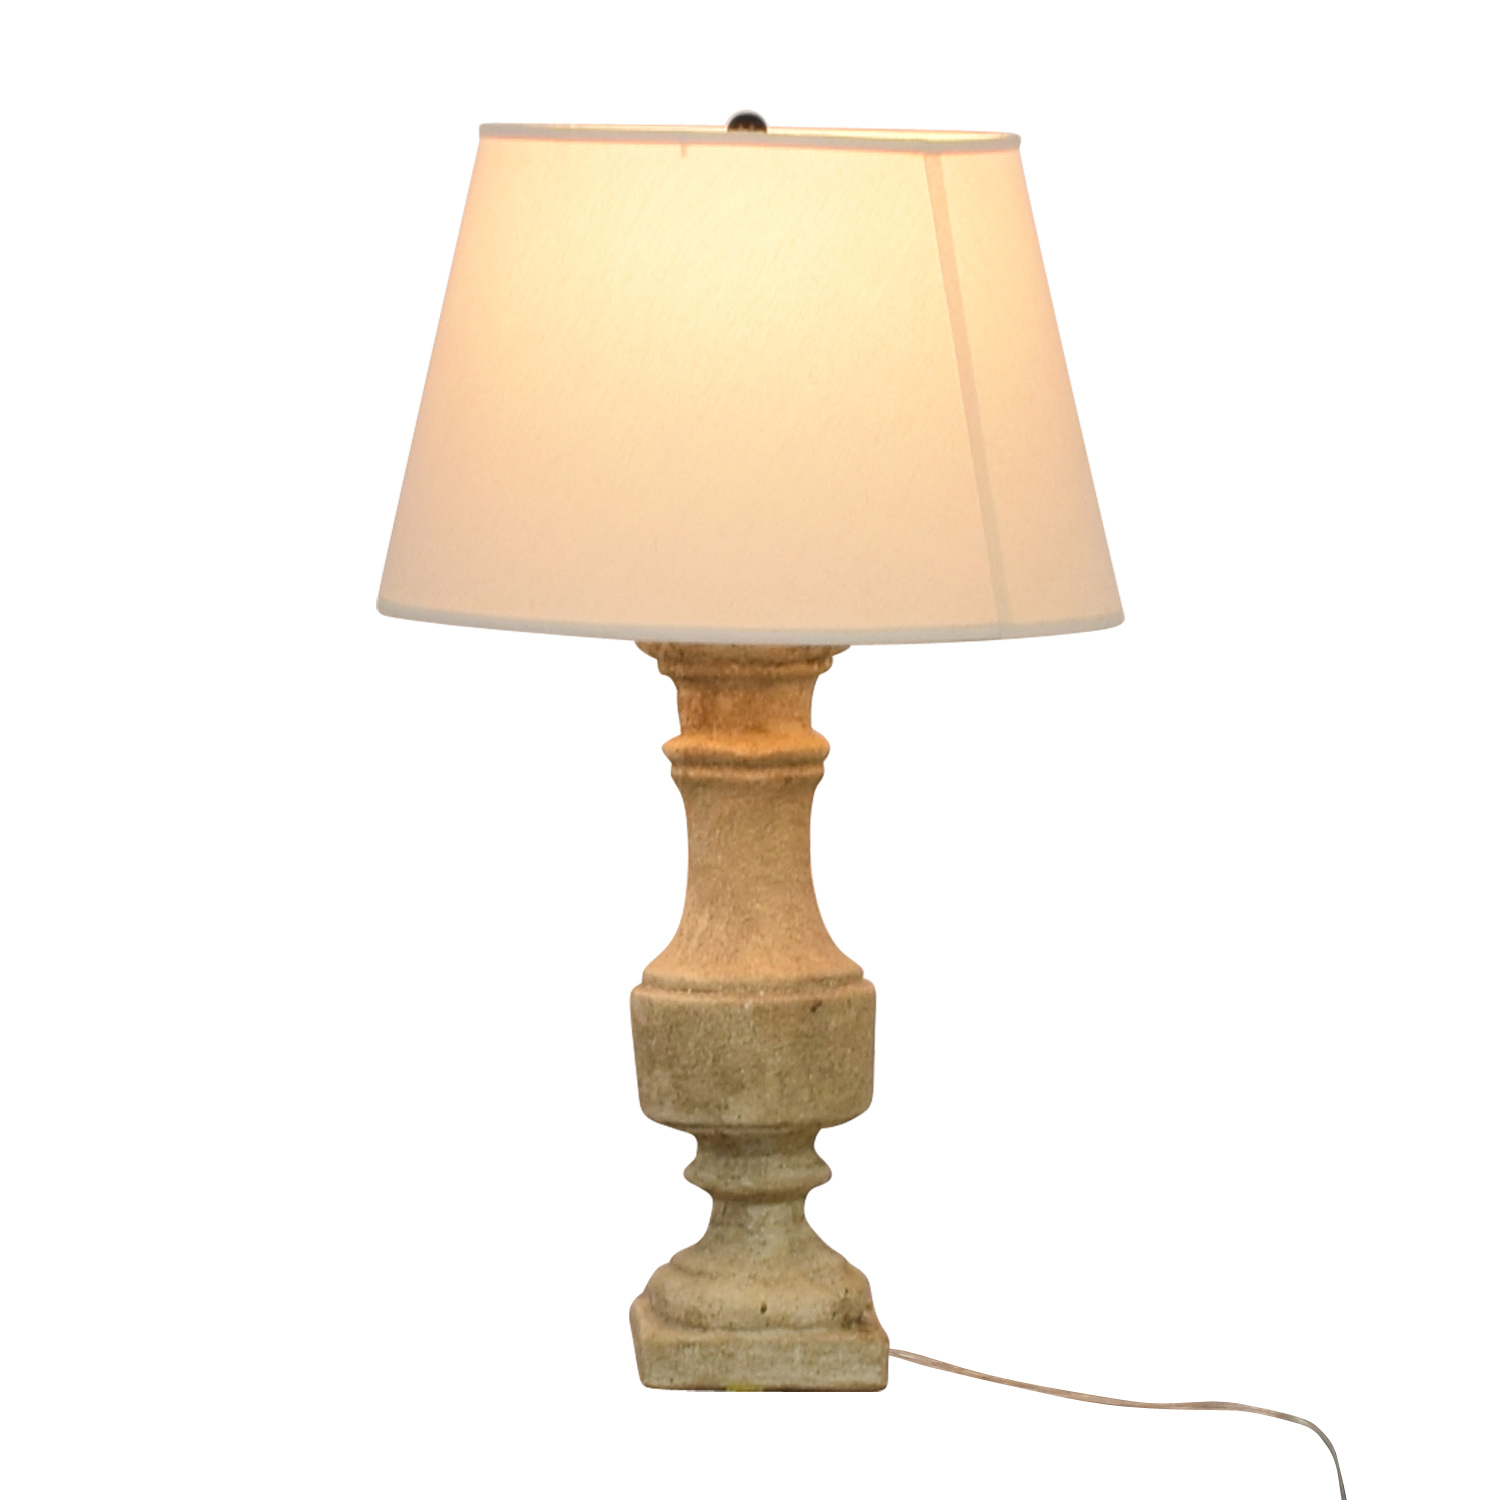 Stone Table Lamp / Decor